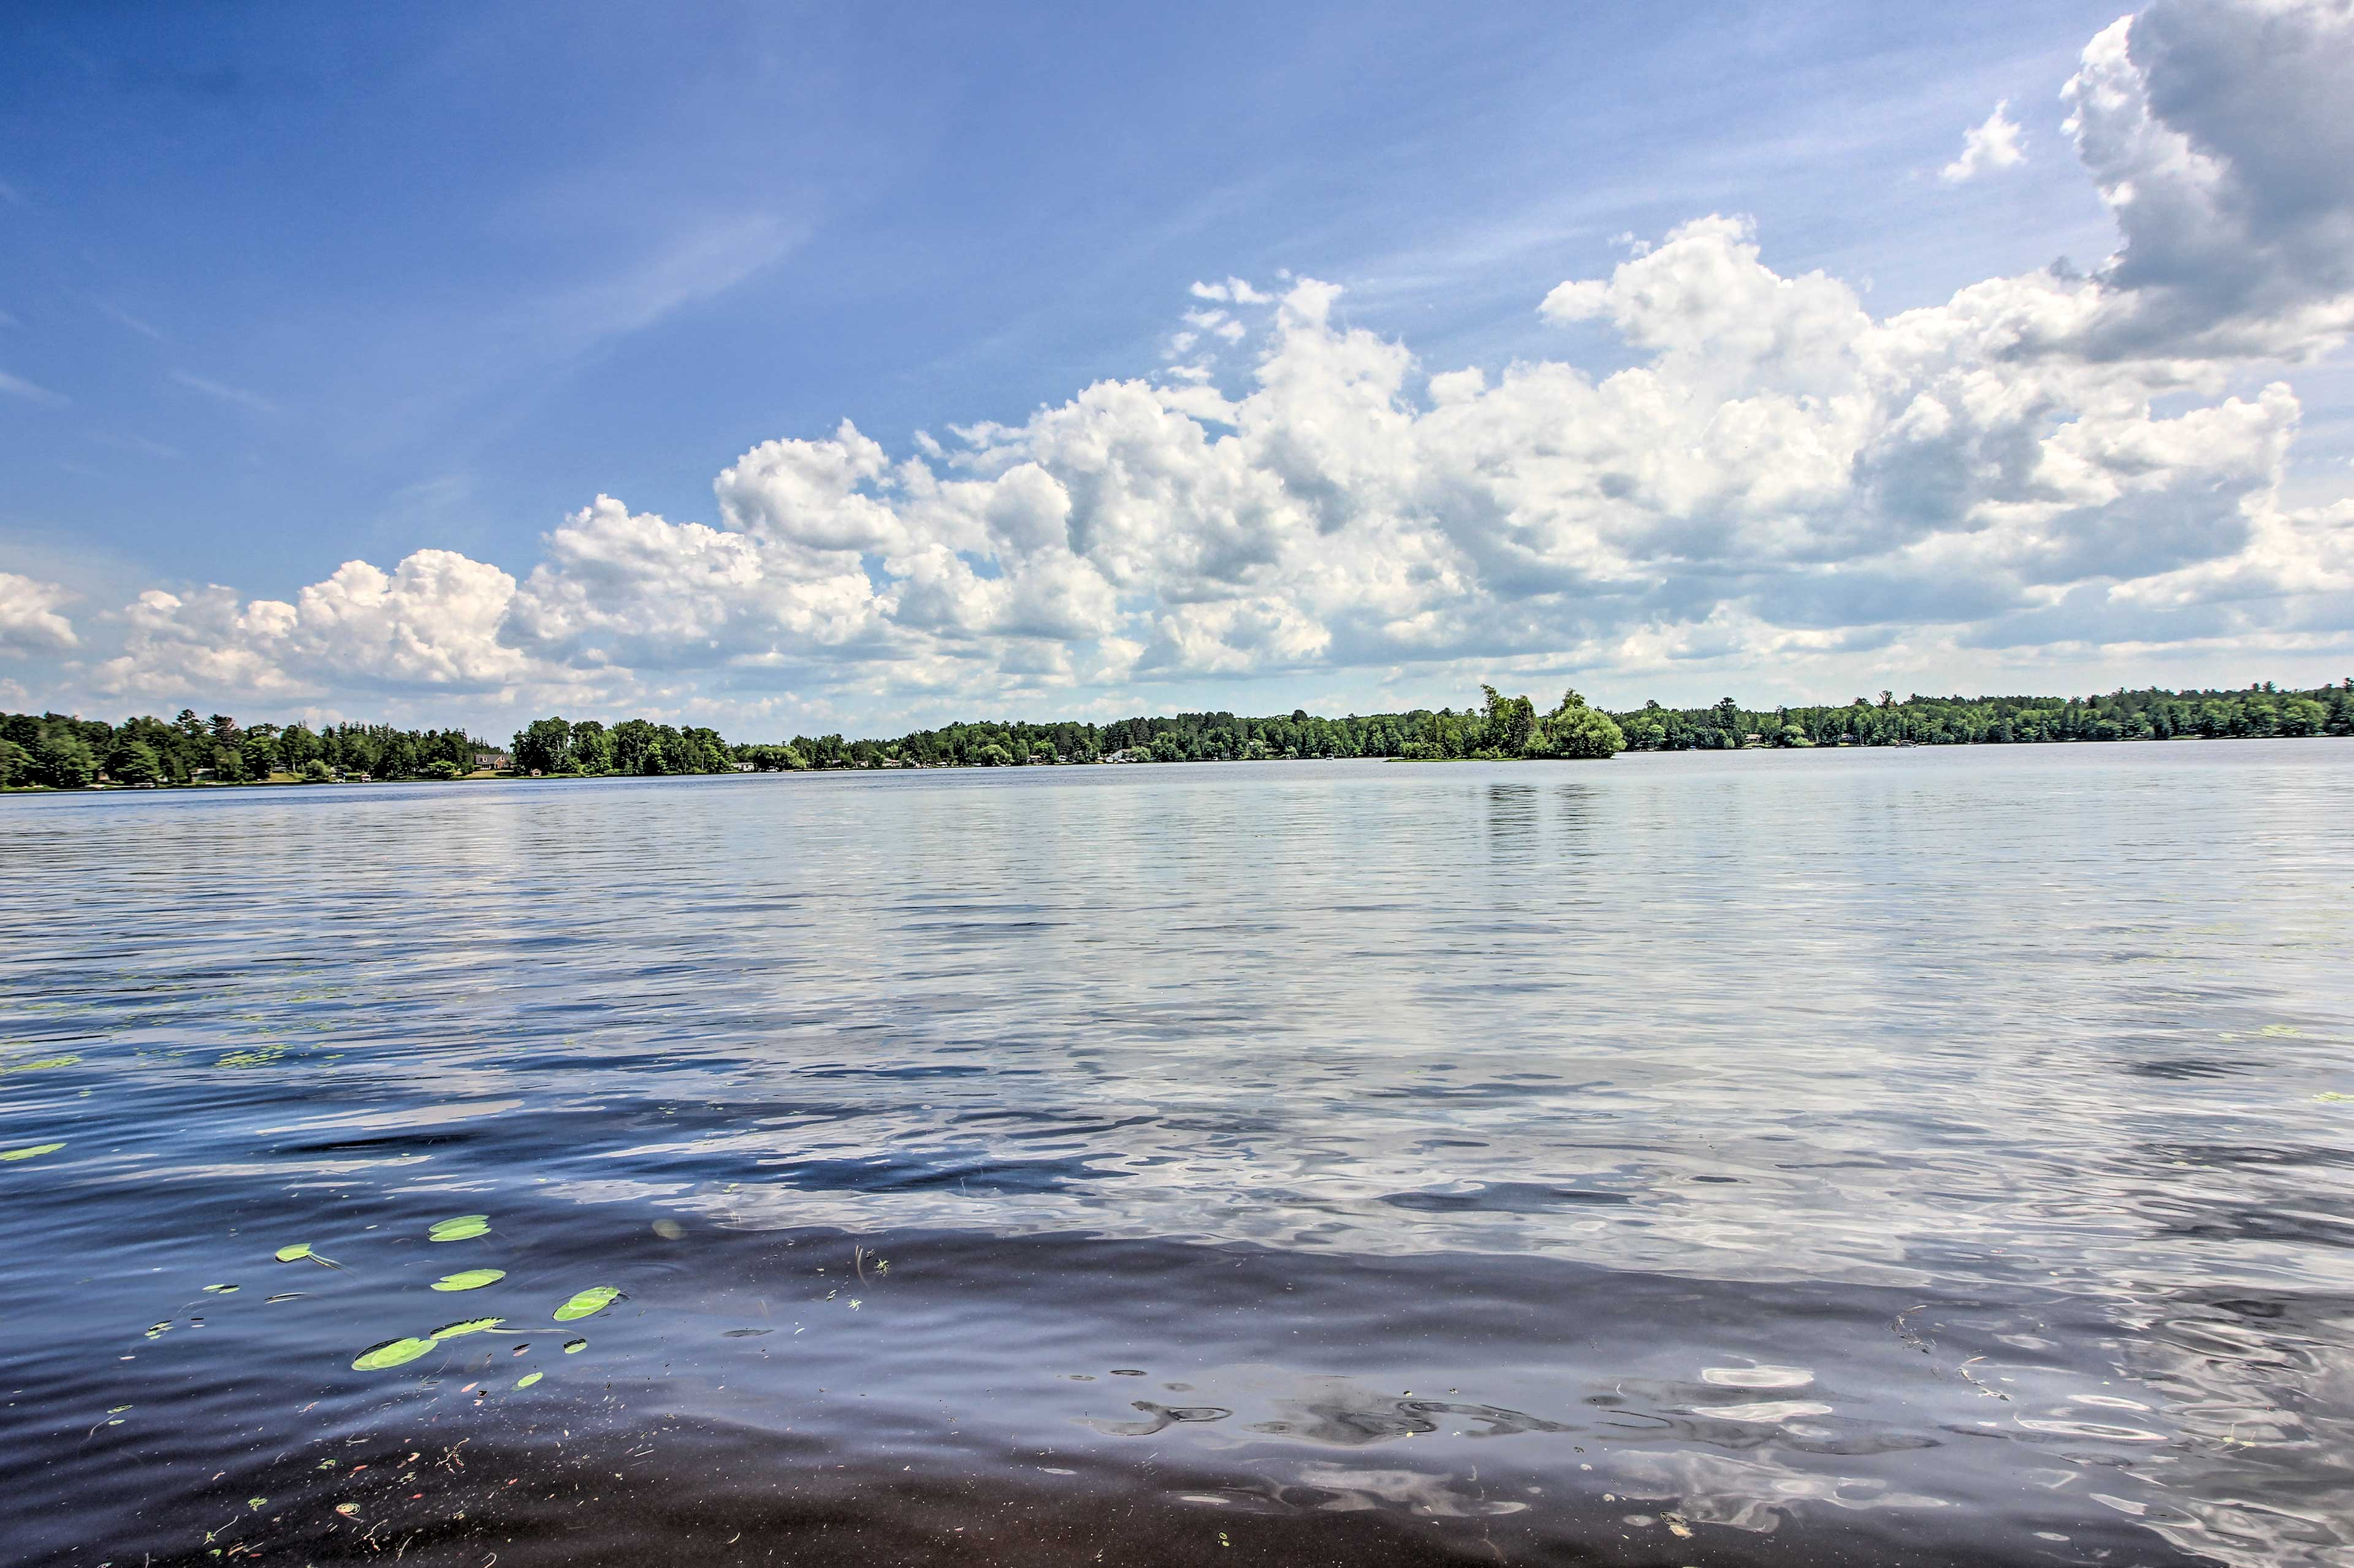 Sunny days of lounging on the lake are only a few steps away!